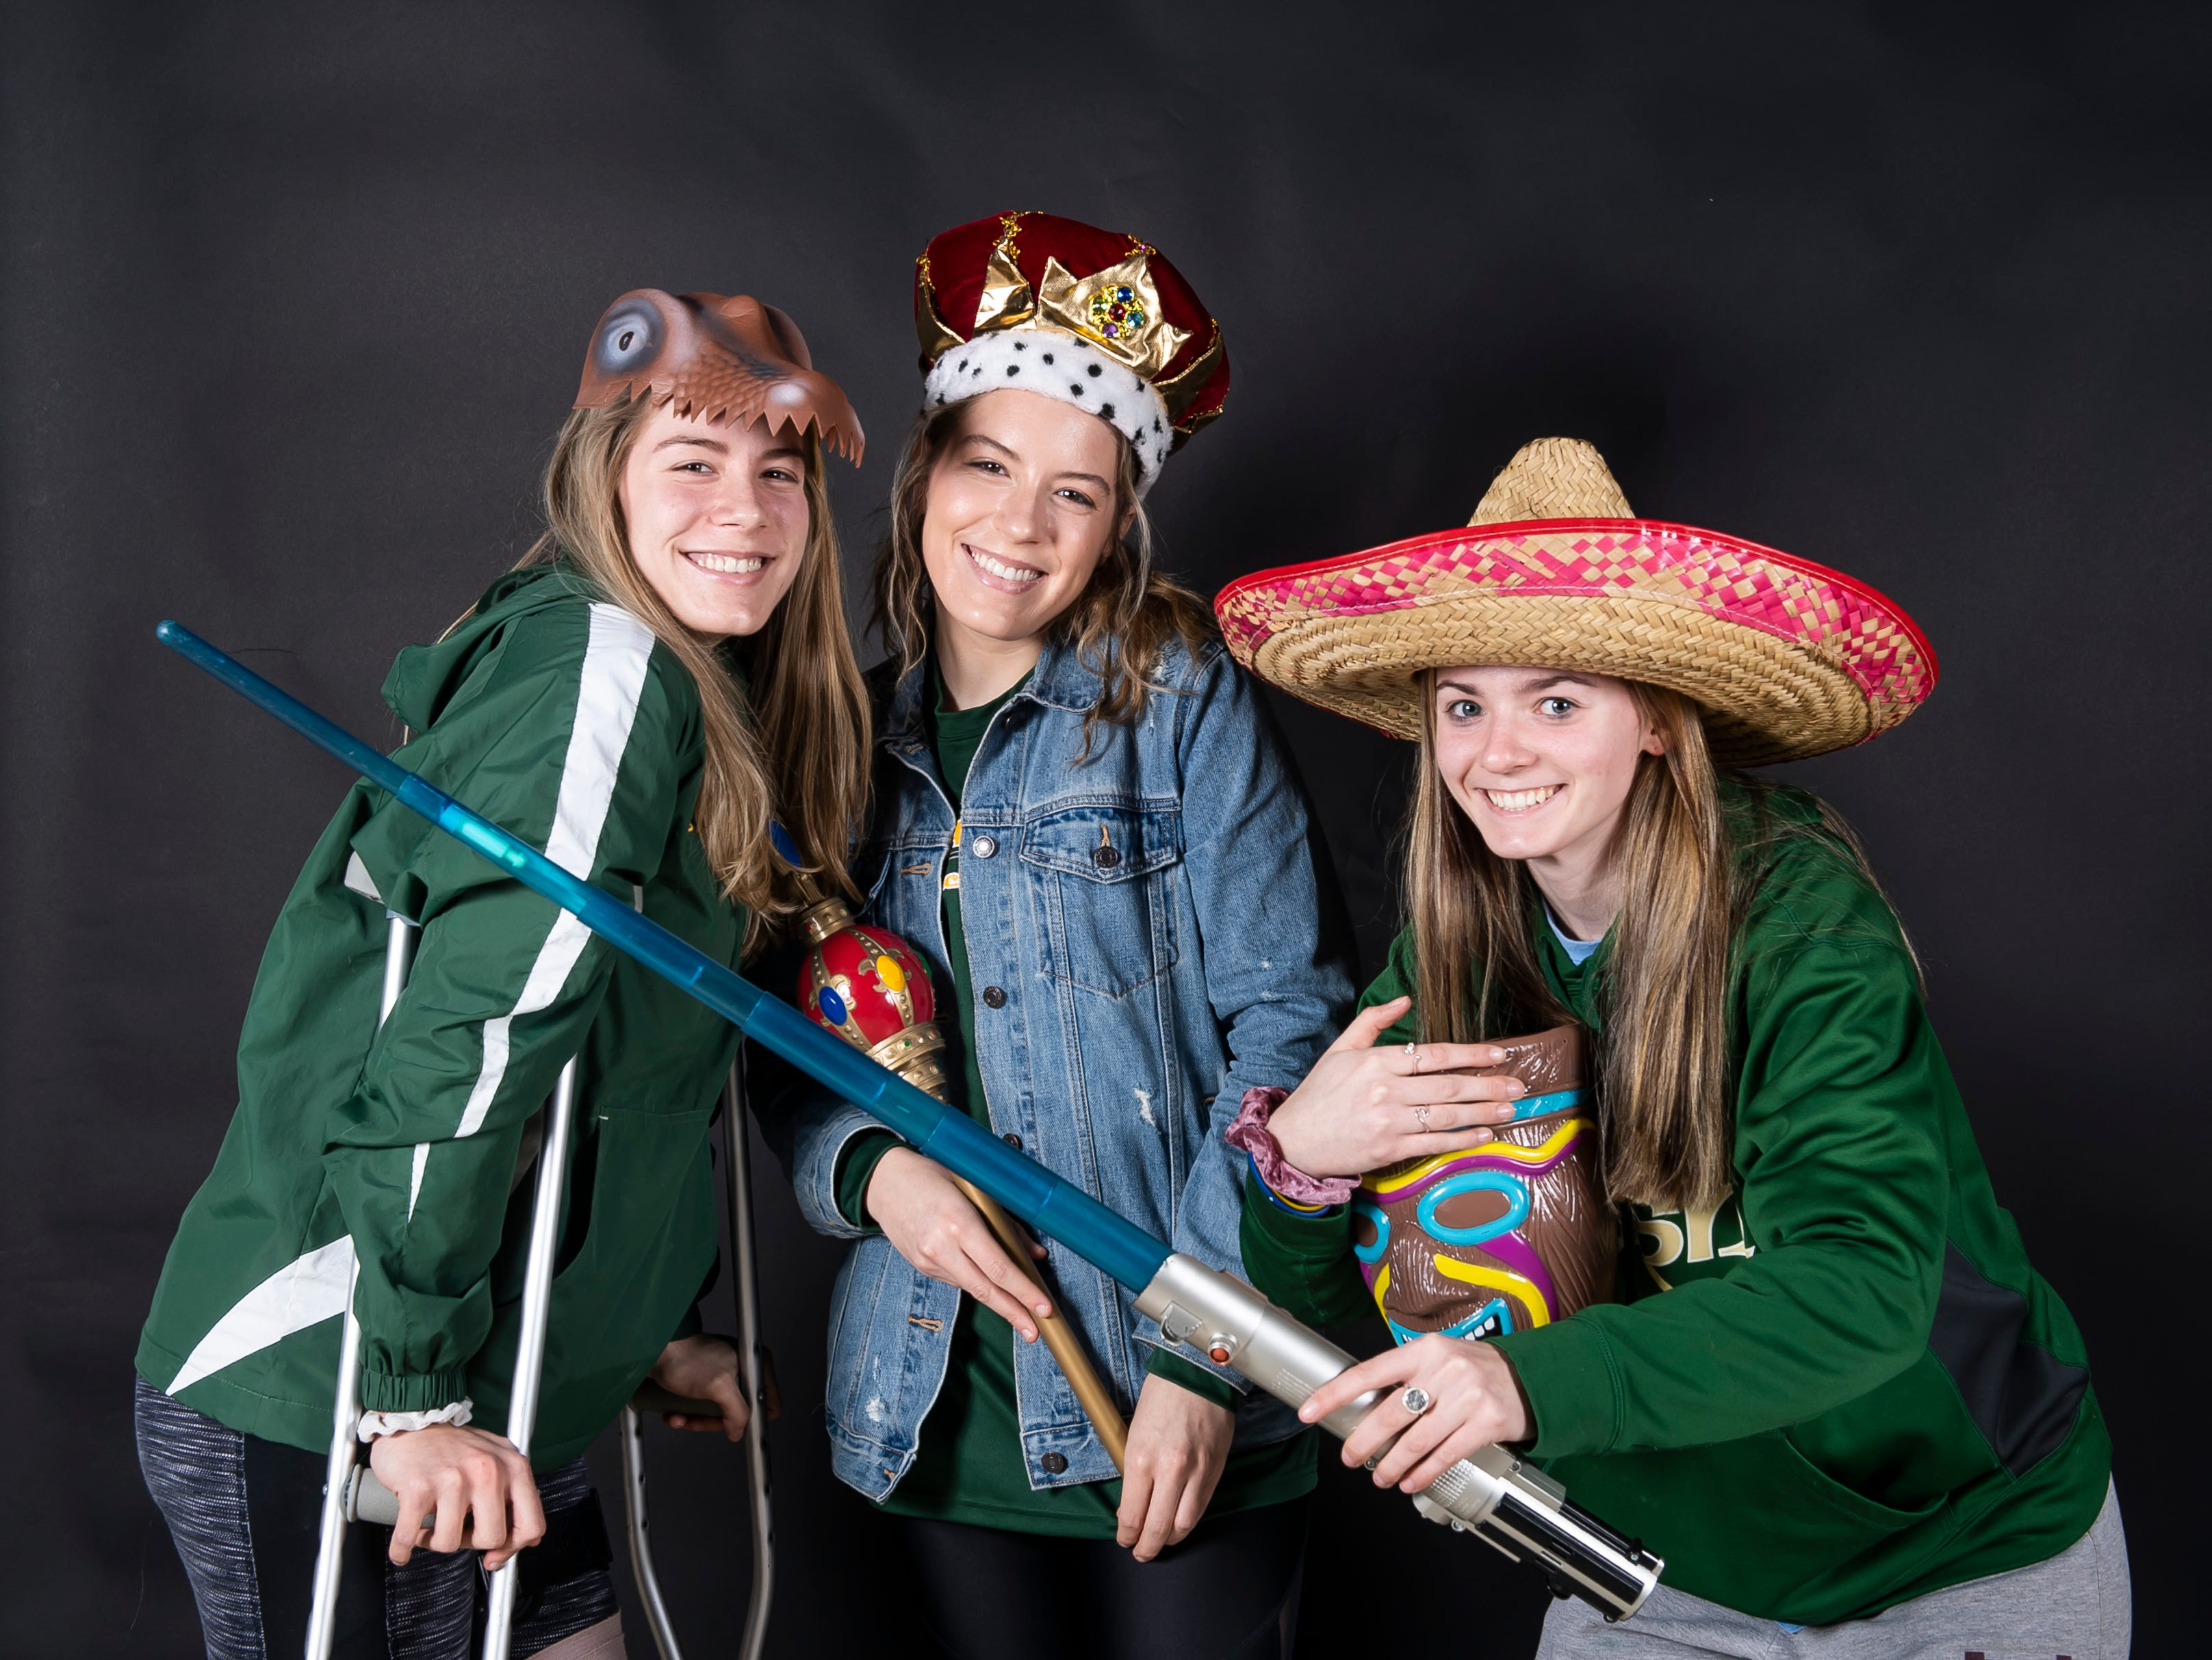 (From left) York Catholic lacrosse players Sarah Reed, Grace Reed and Phallon Kilduff strike a pose in the GameTimePA photo booth during spring sports media day in York Sunday, March 10, 2019.